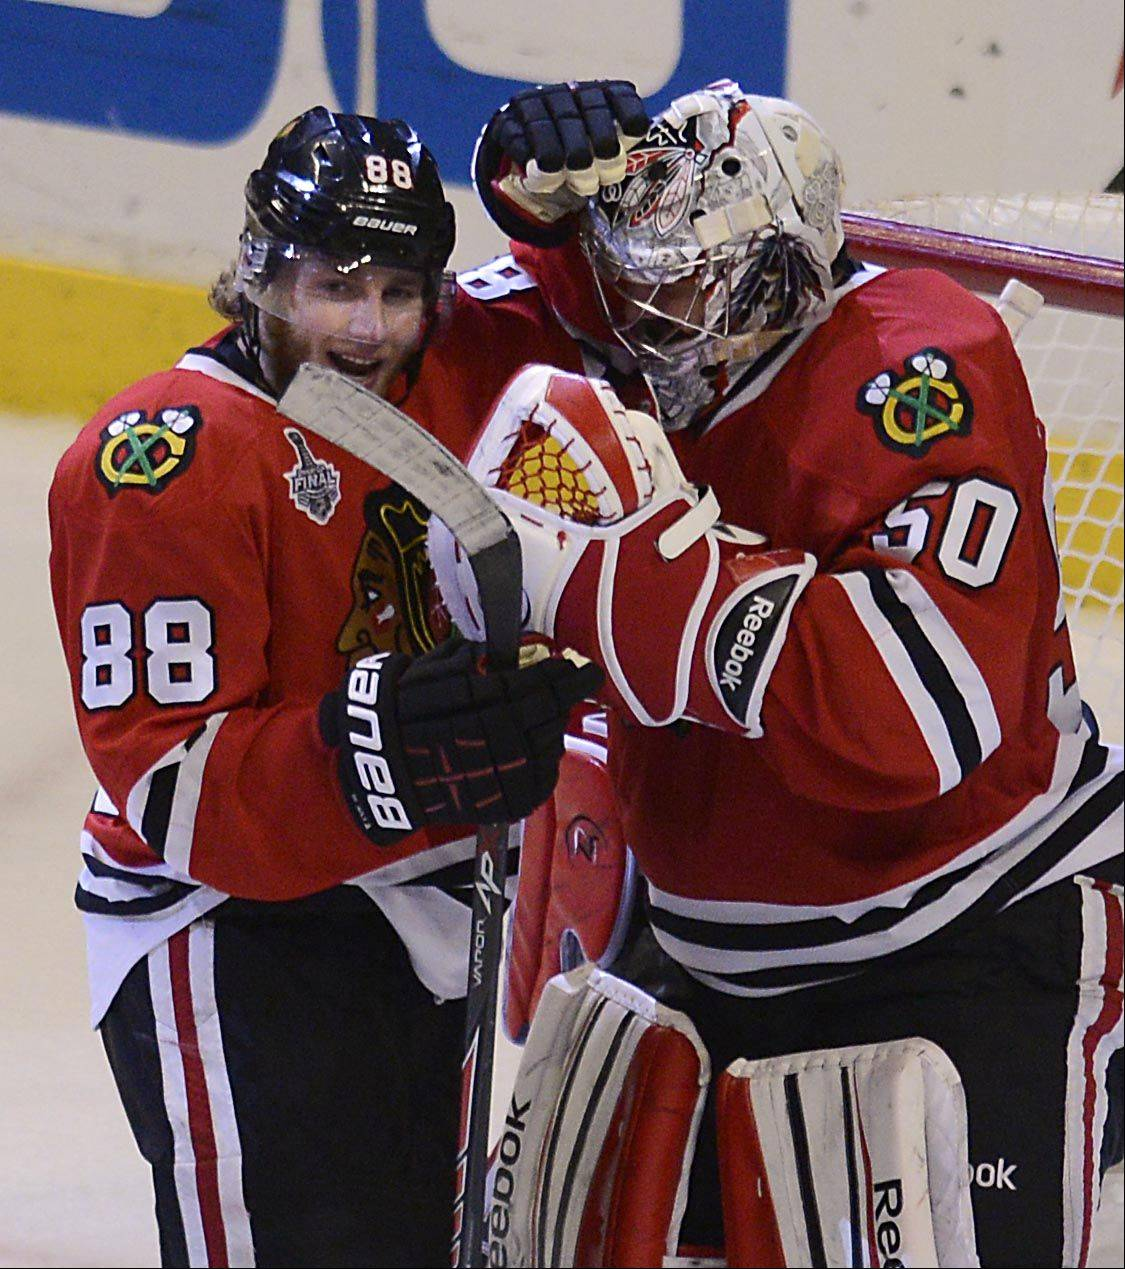 Blackhawks winger Patrick Kane and goalie Corey Crawford congratulate each other after Saturday's 3-1 win over the Boston Bruins in Game 5 of the Stanley Cup Final at United Center.